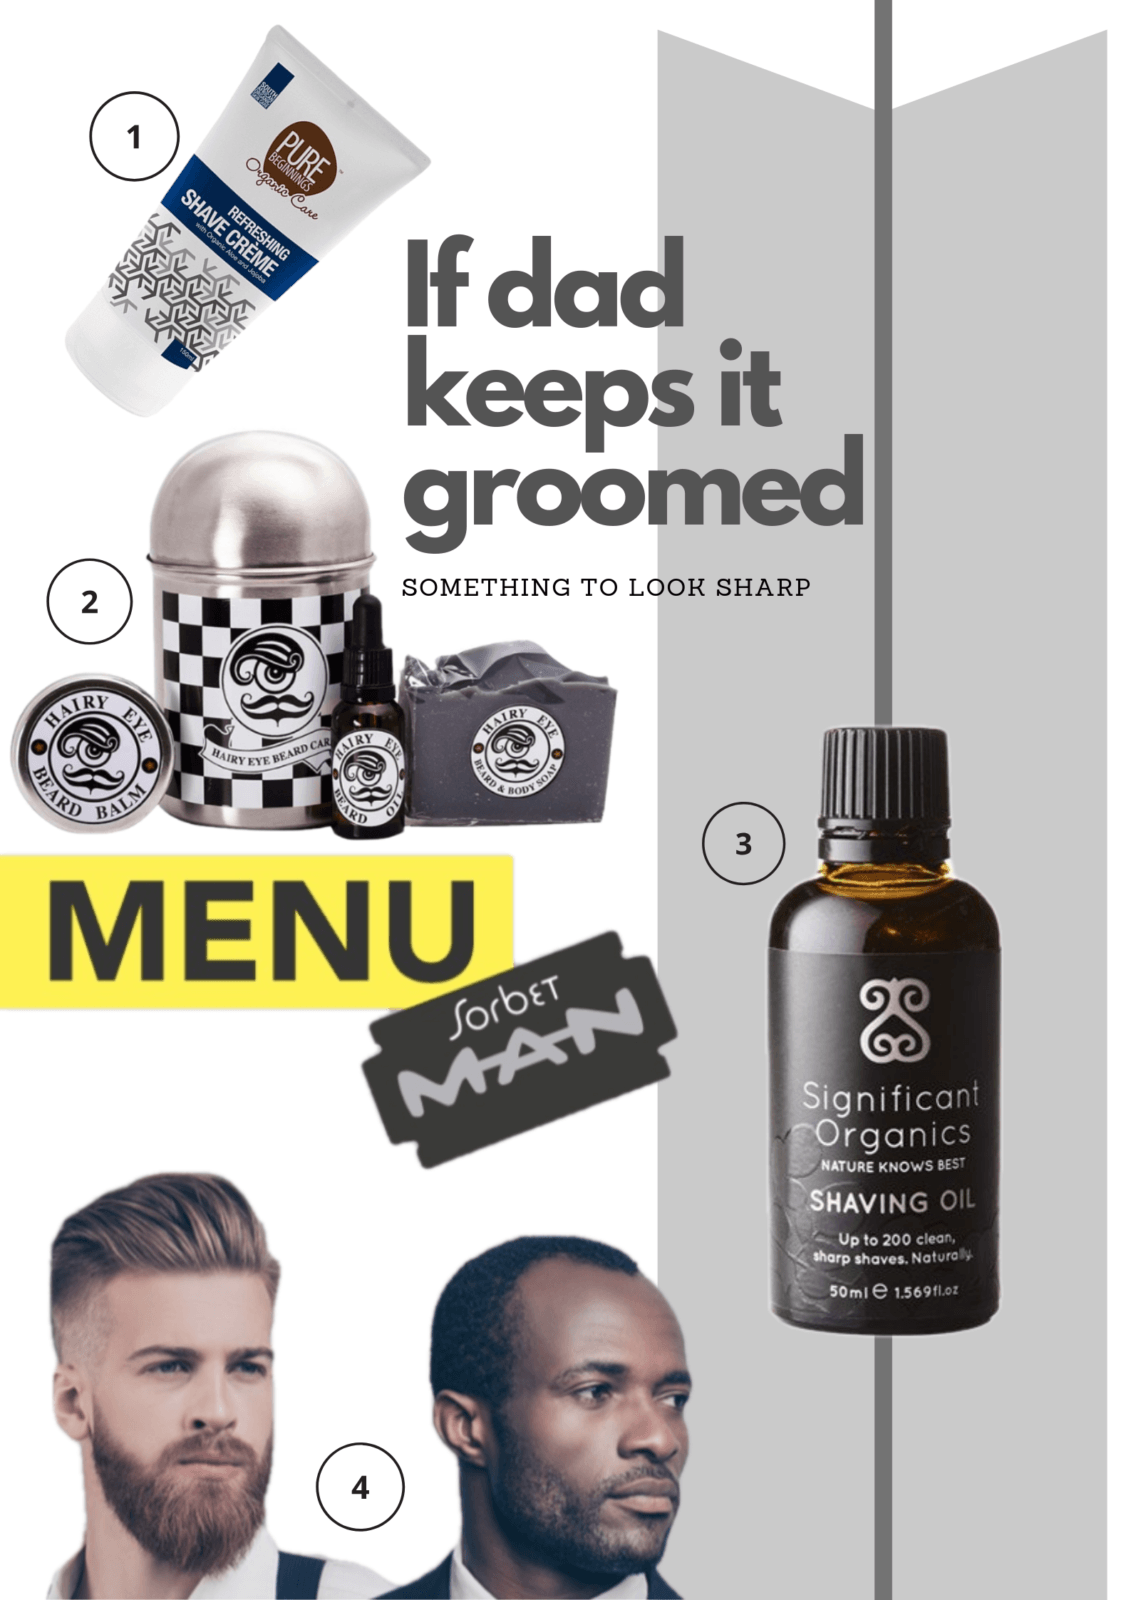 JustAMamma-Fathers-Day-gift-guide-4